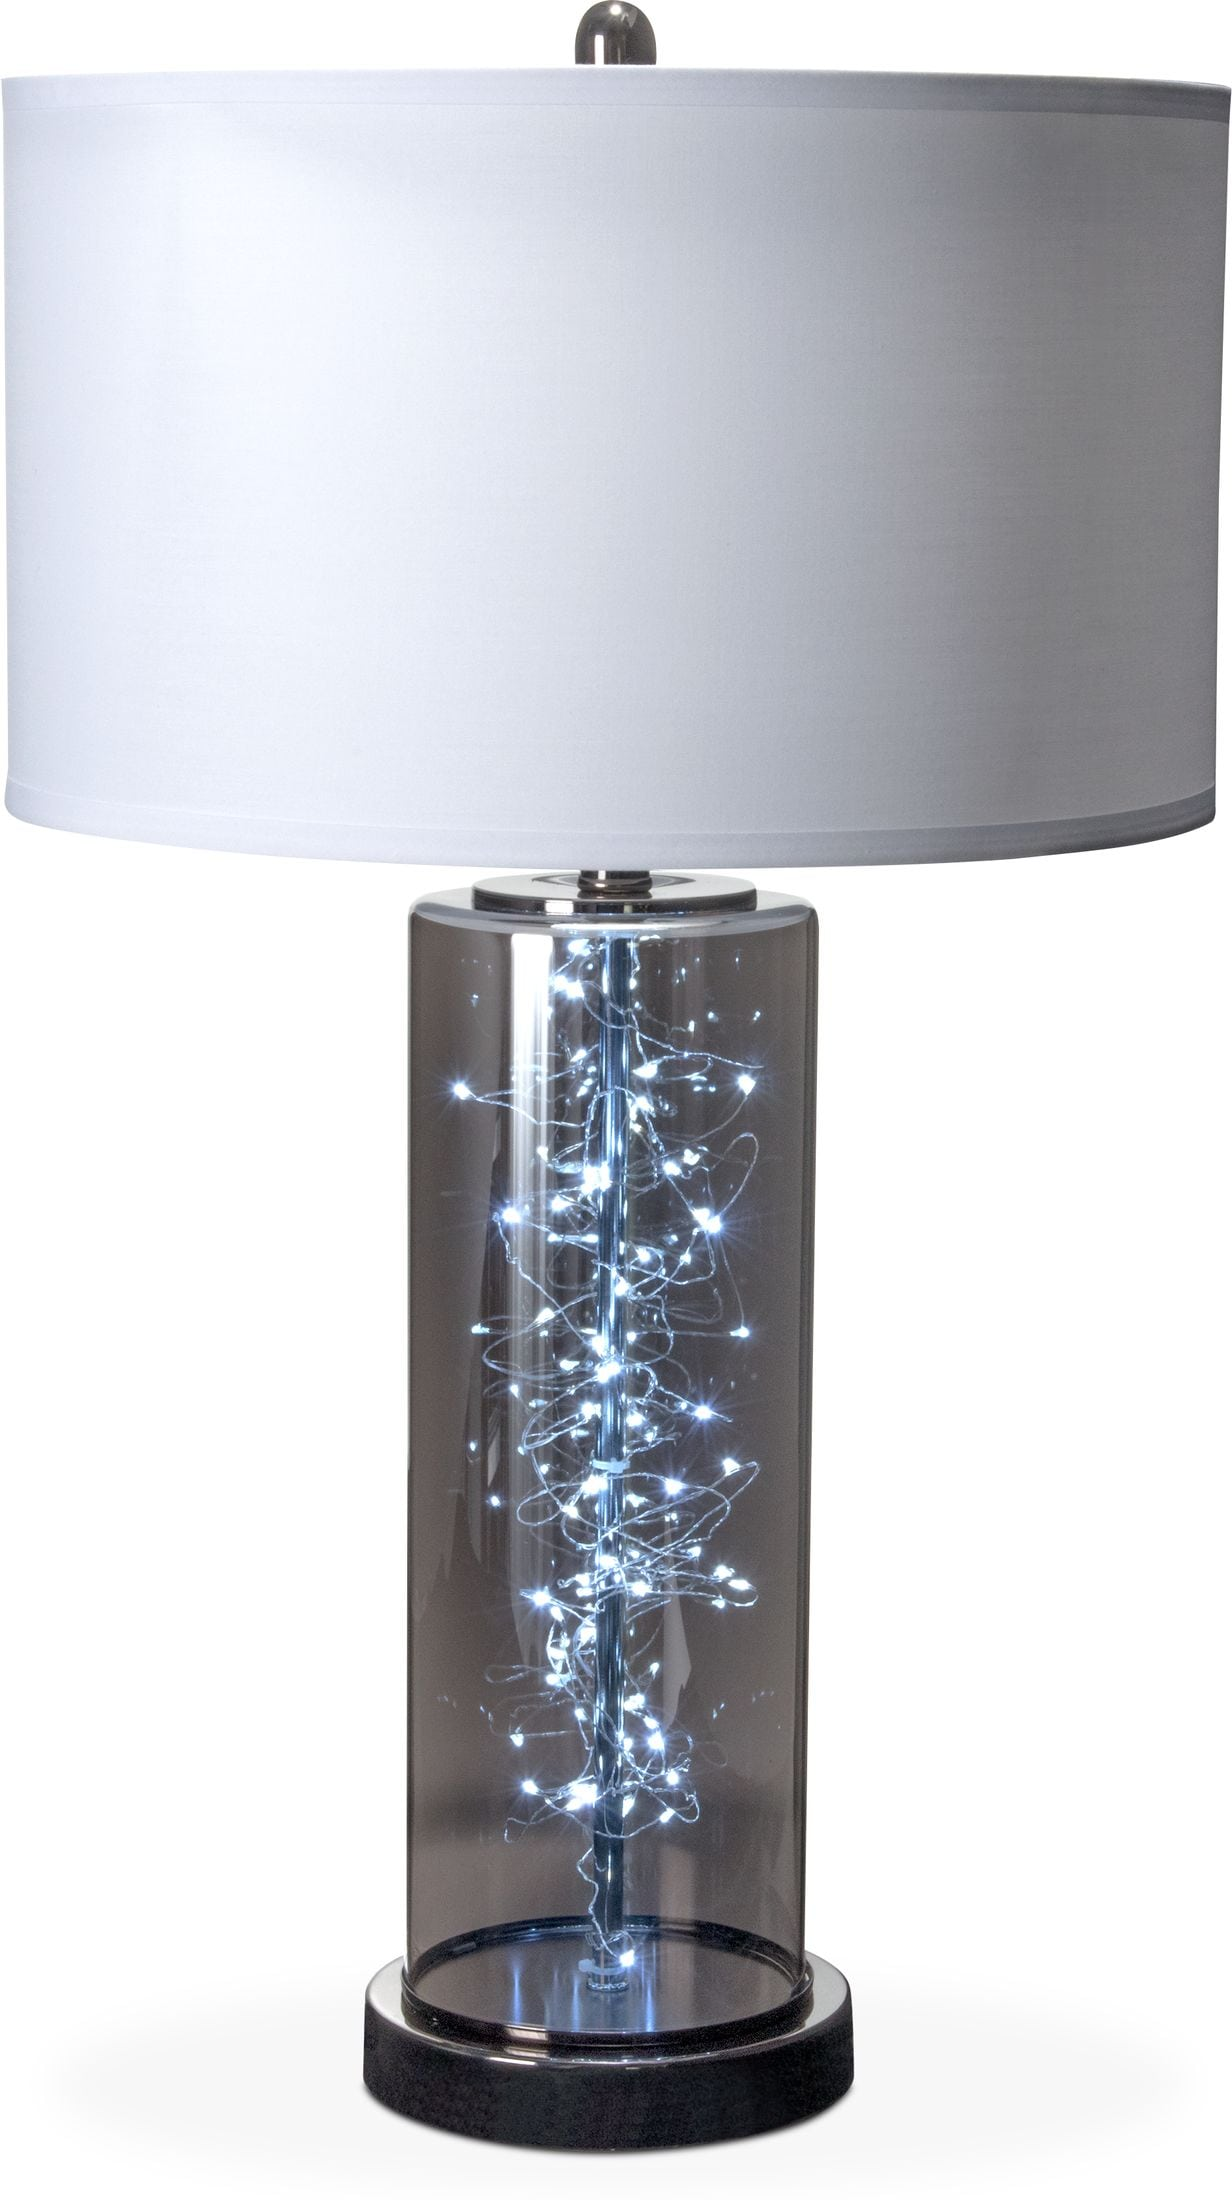 Home Accessories - Twinkle Table Lamp